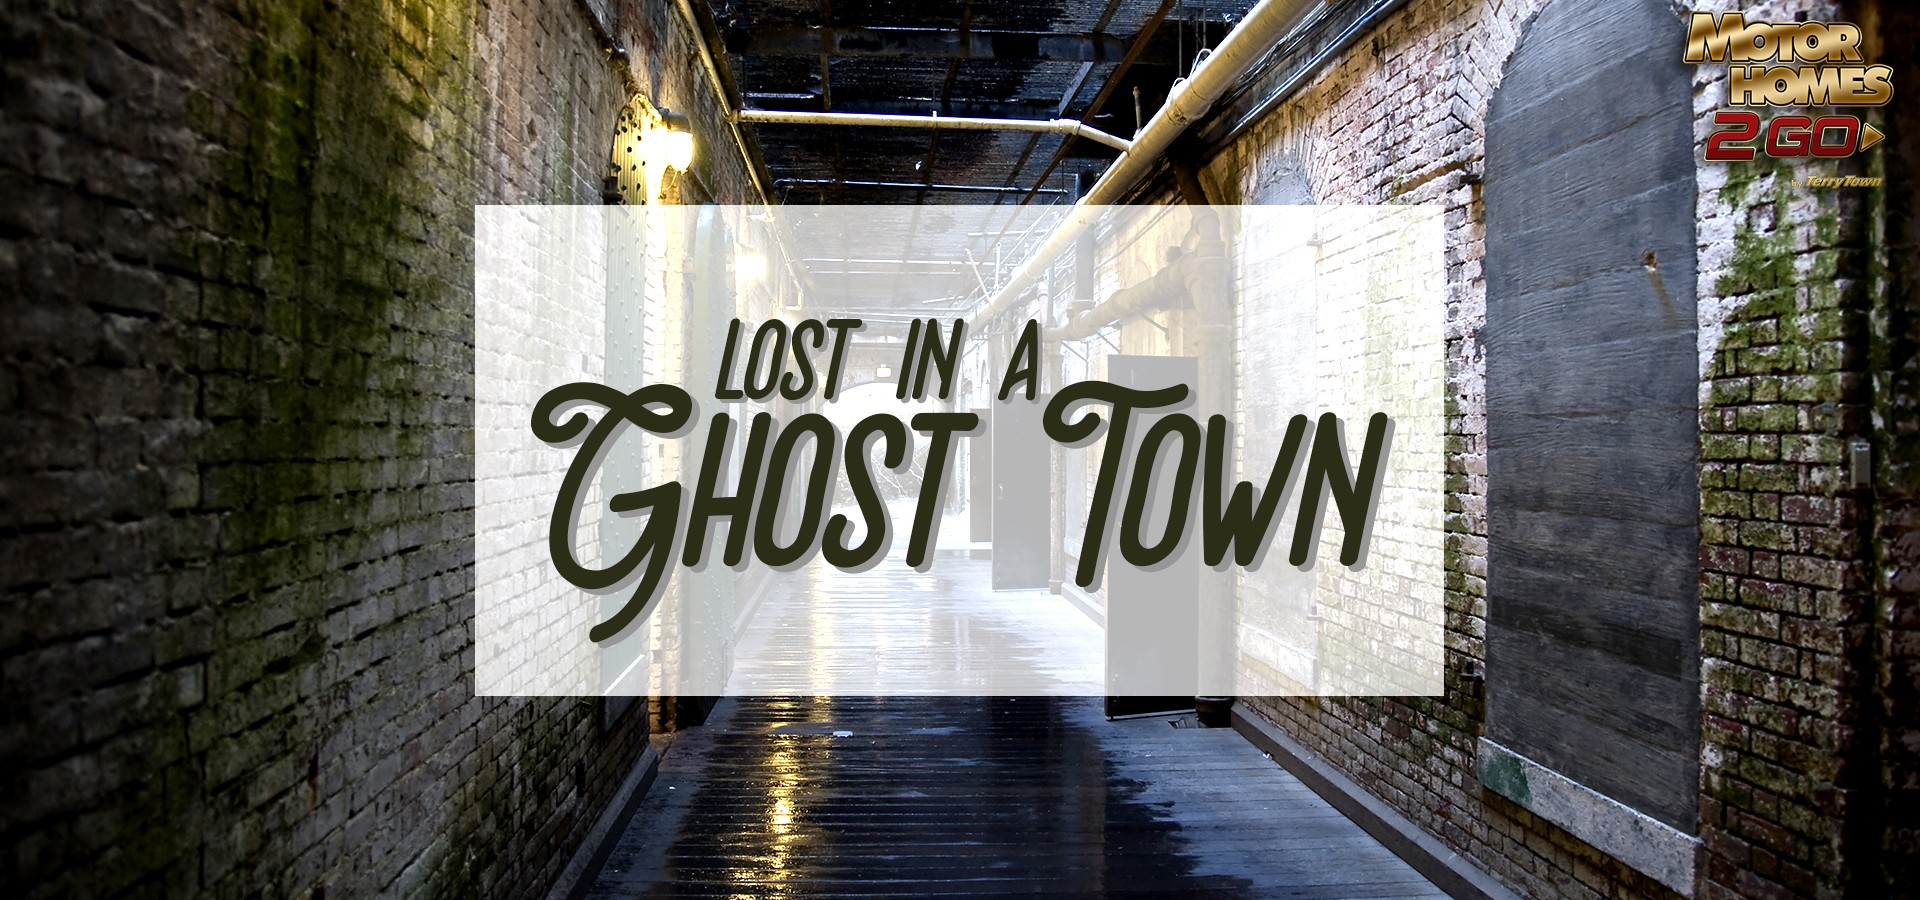 Lost in a ghost town